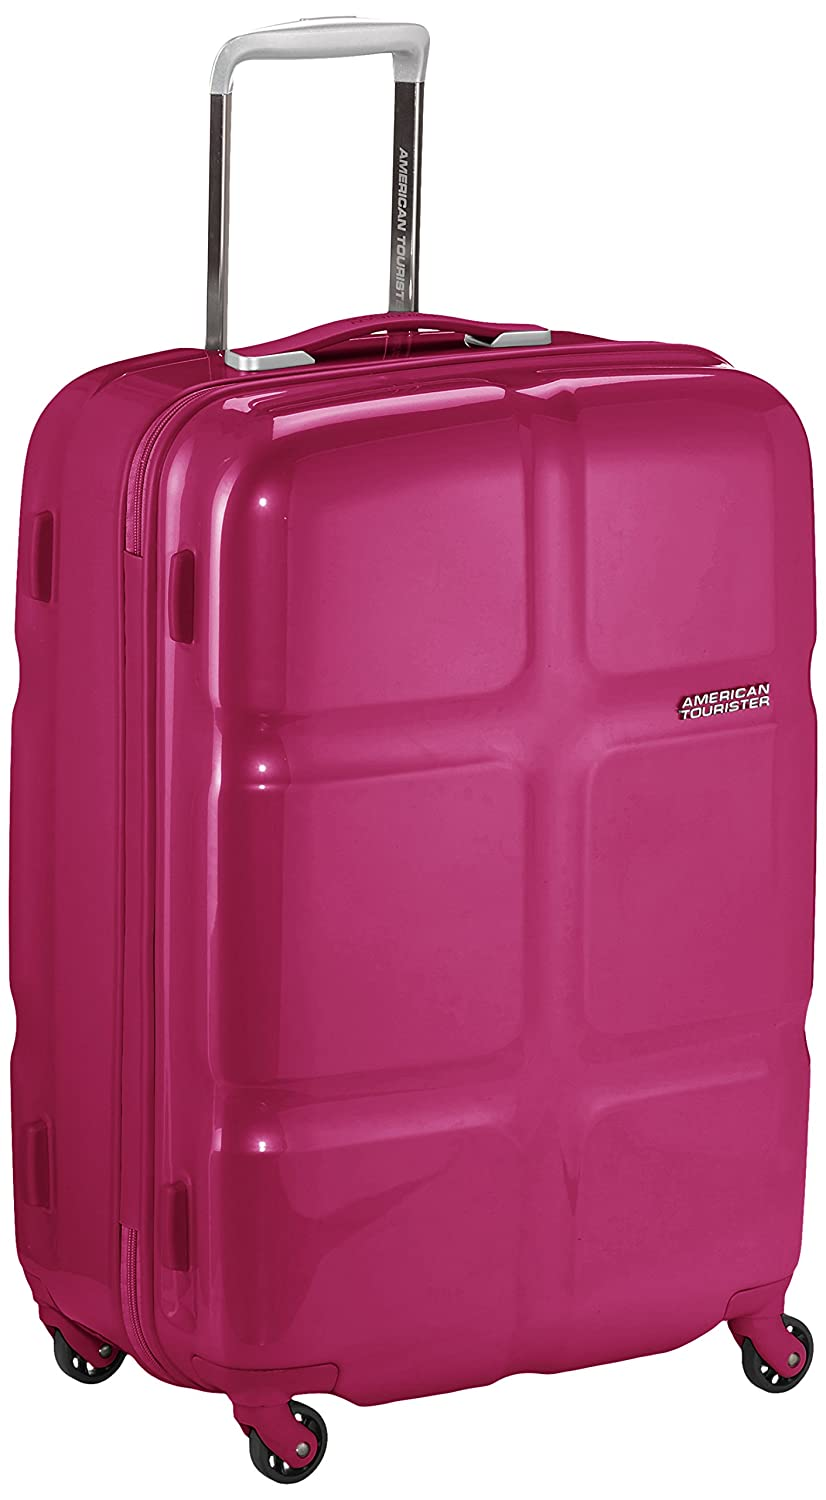 American Tourister Supersize Spinner 68/25 Maletas y trolleys, 68 cm, 74 L, Rosa (Rosa): Amazon.es: Equipaje